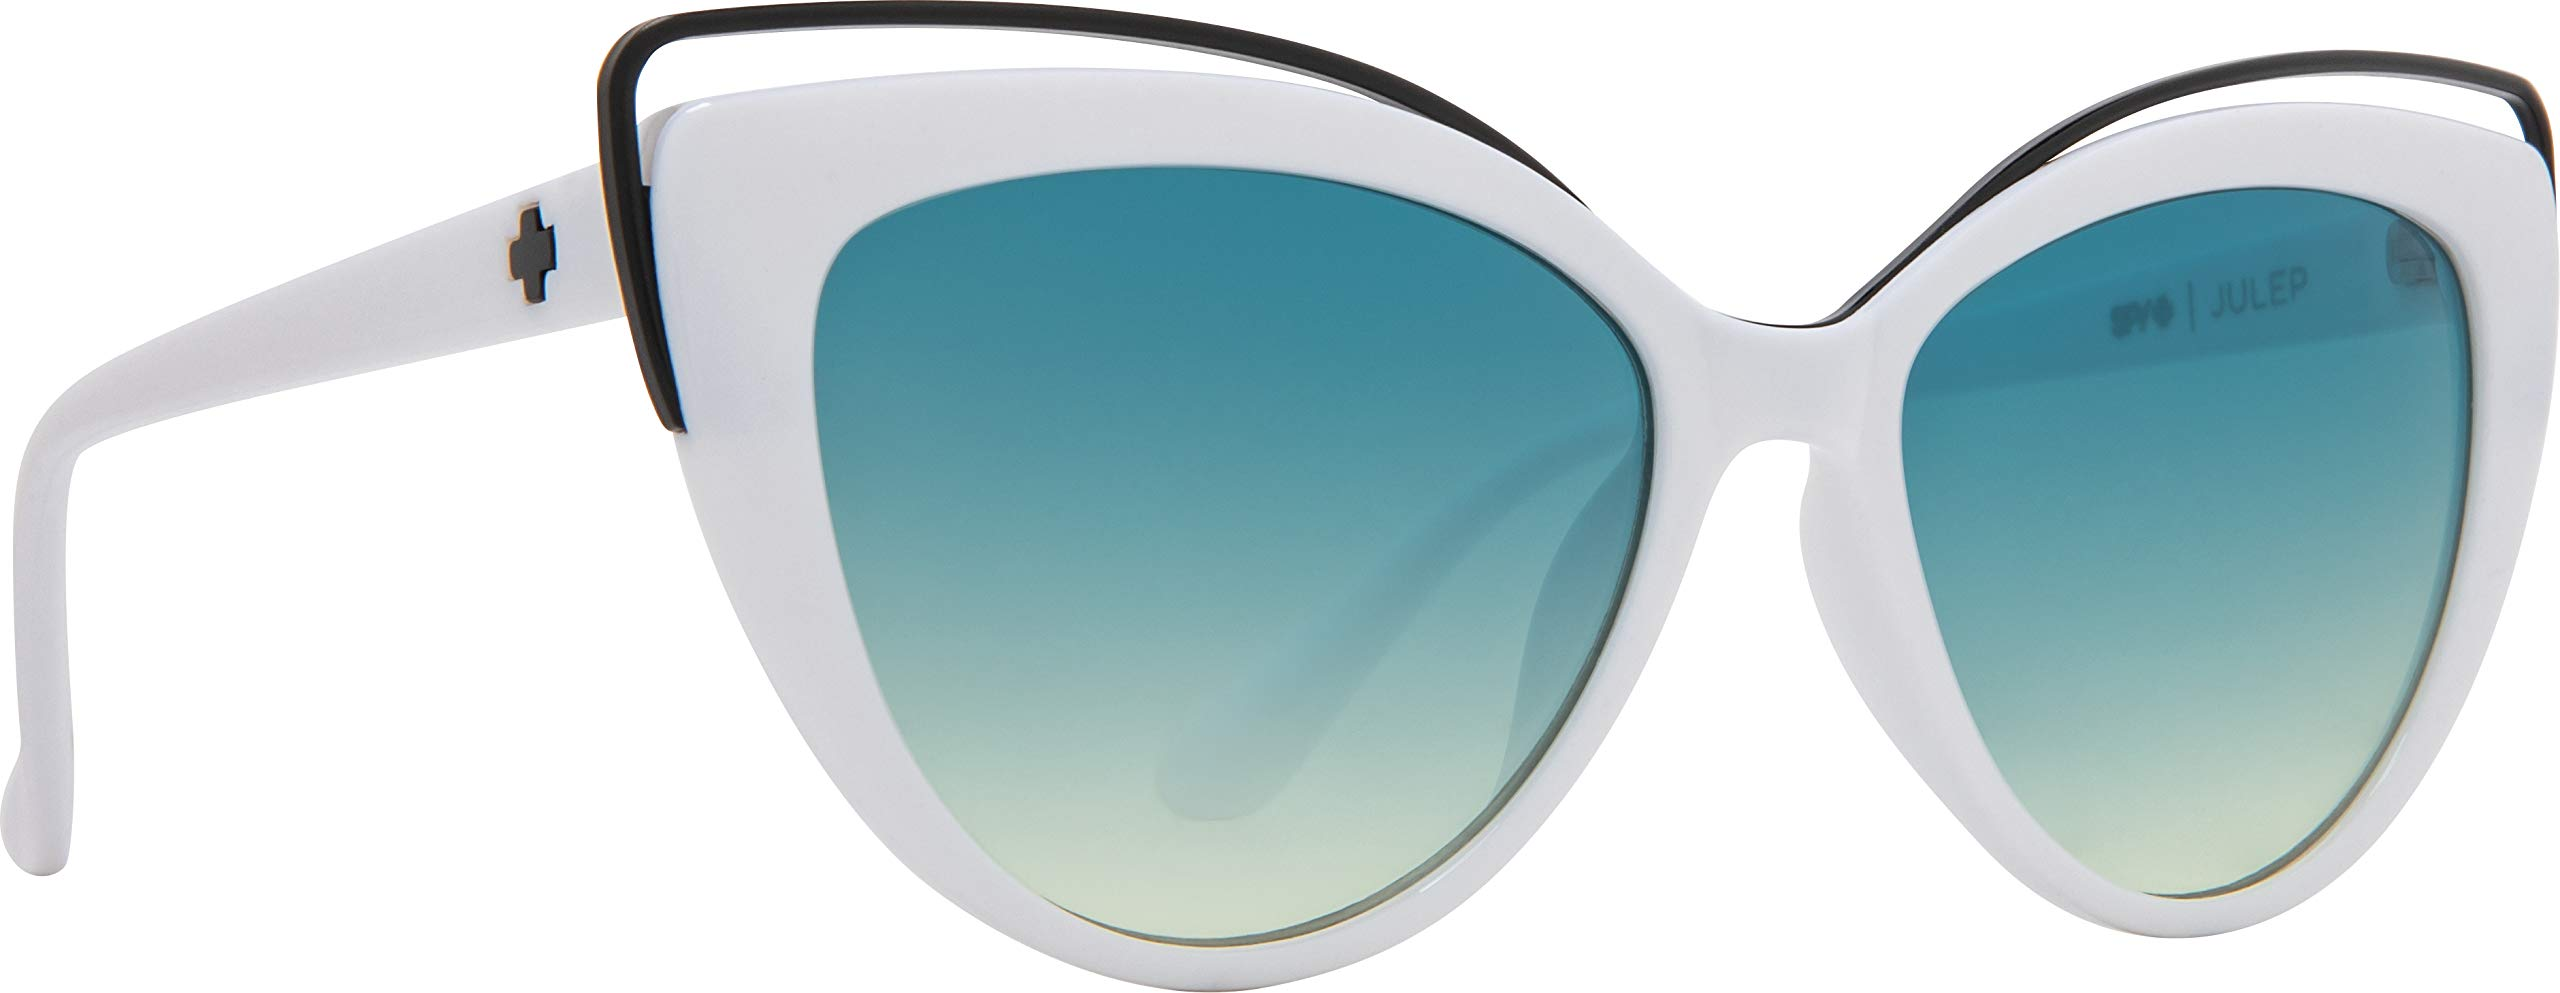 REFRESH COLLECTION JULEP SUNGLASSES BY SPY OPTIC